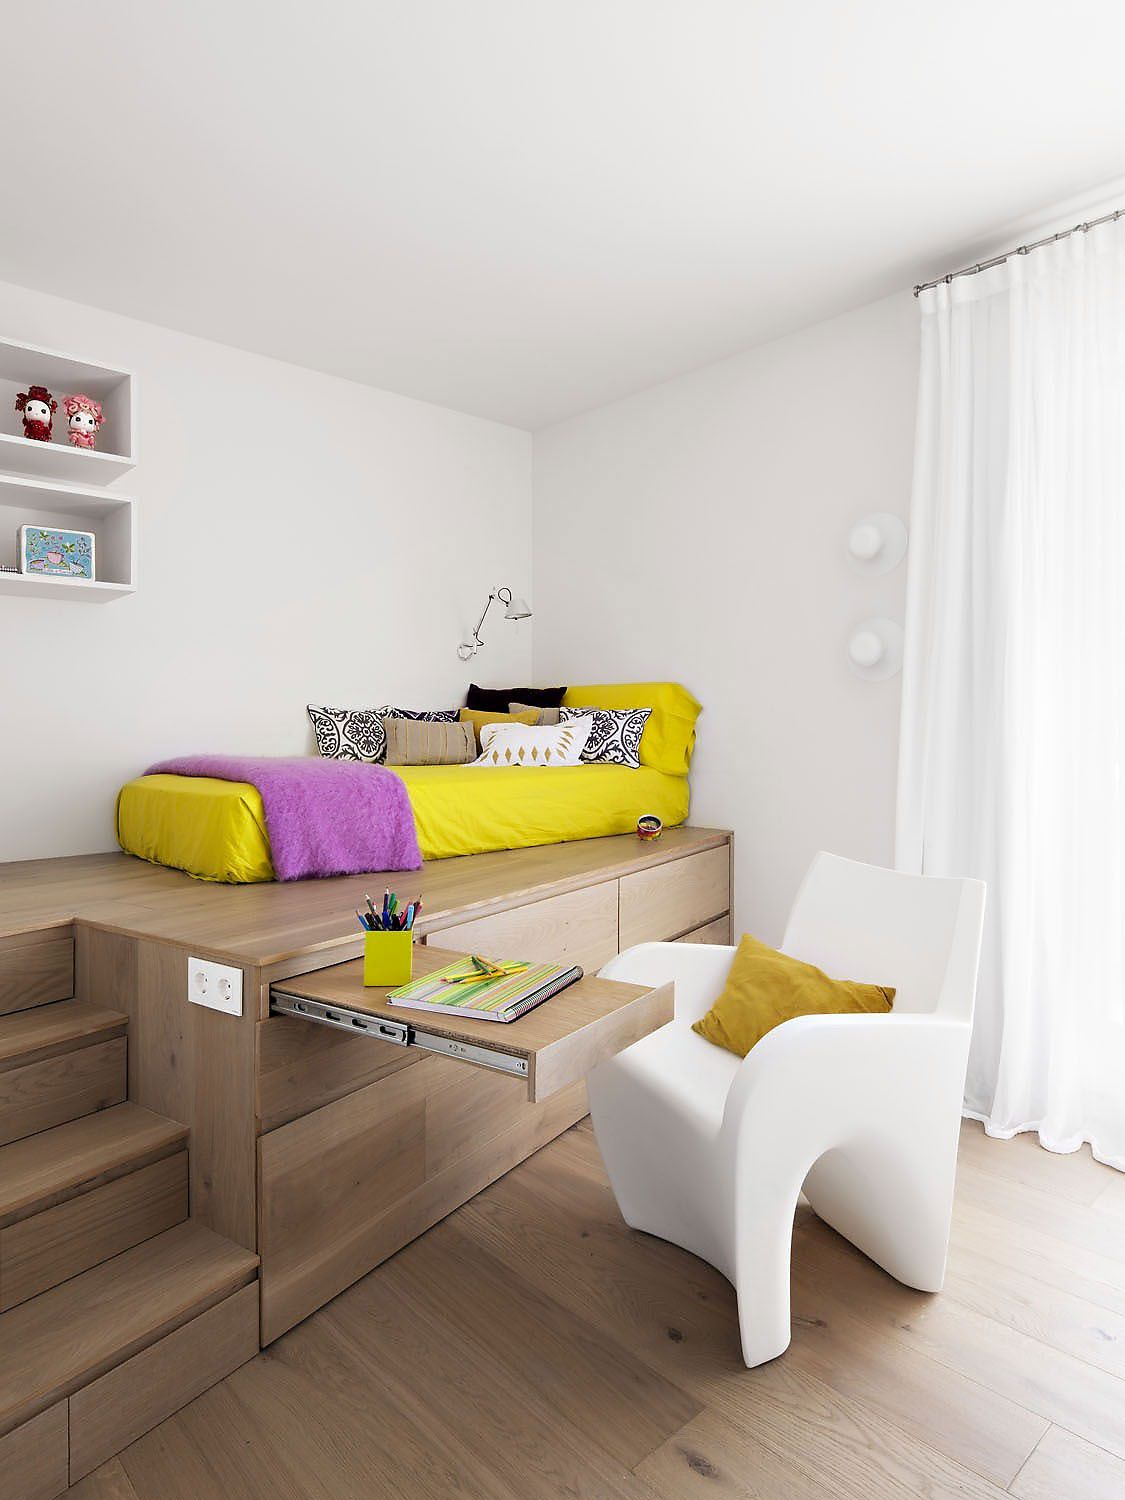 Clever Use of Storage Space Under The Bed And Stairs | iDesignArch ...